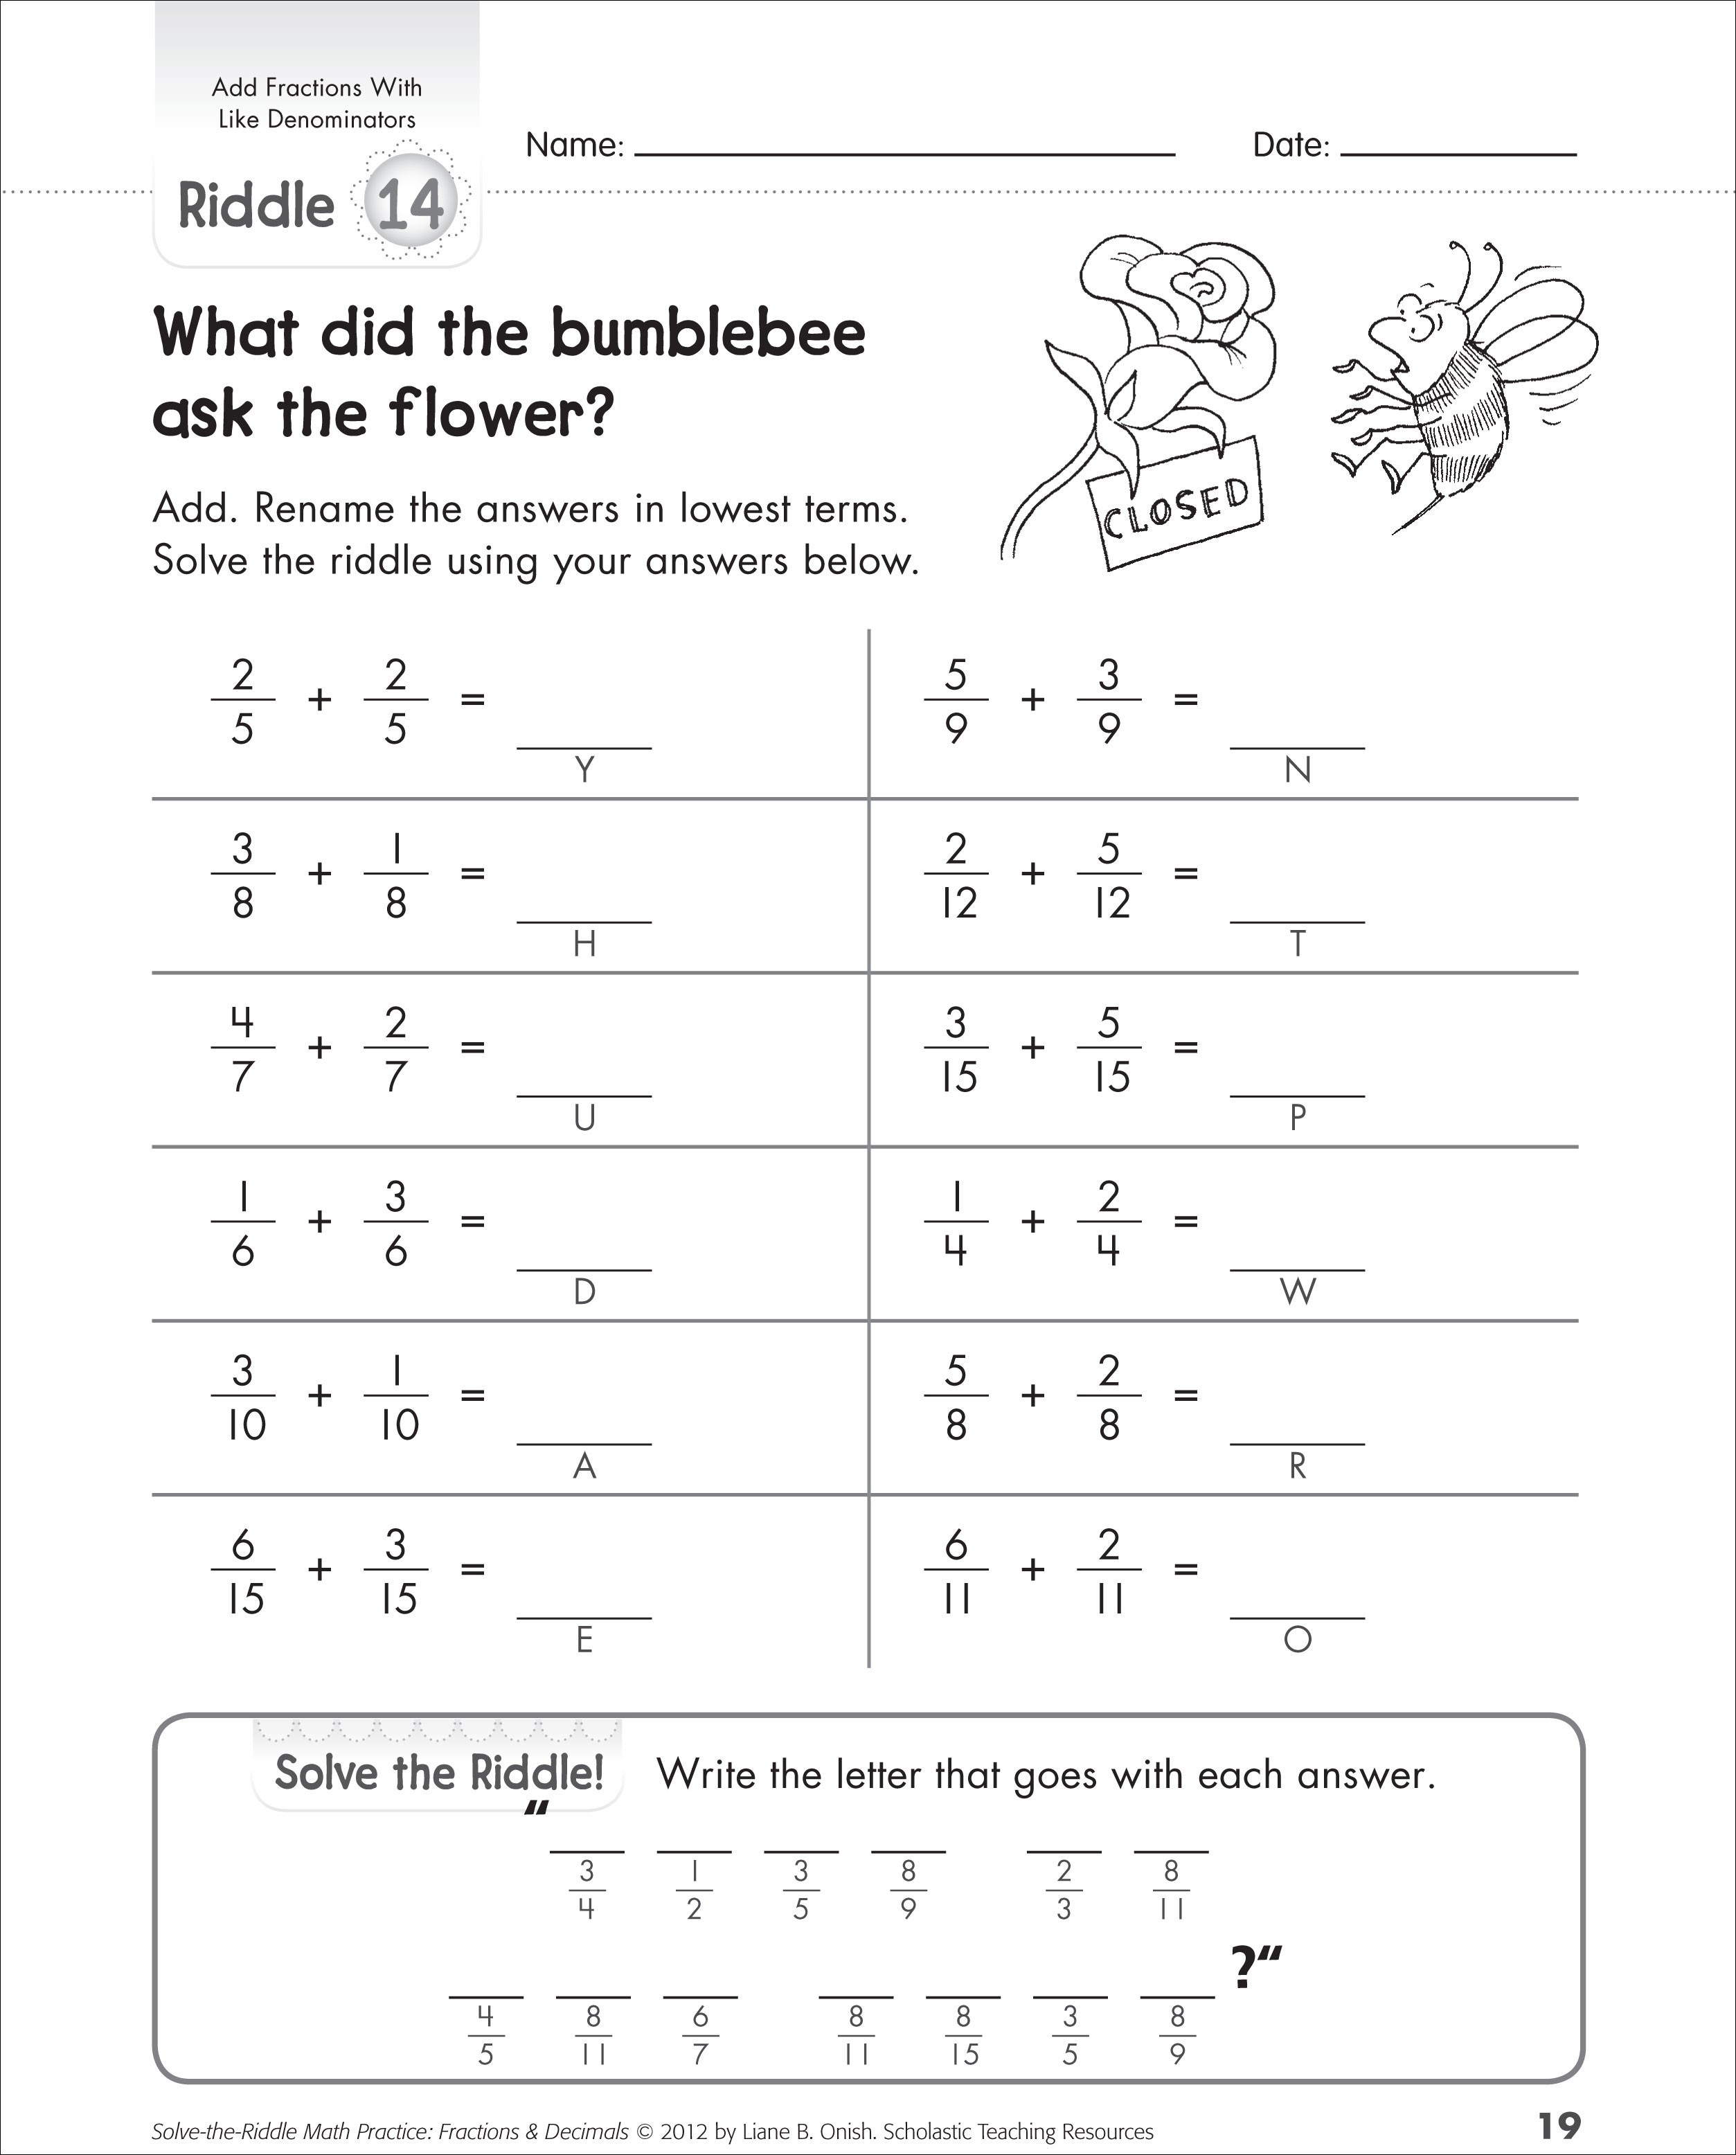 5th Grade Math Worksheets Adding Fractions With Unlike